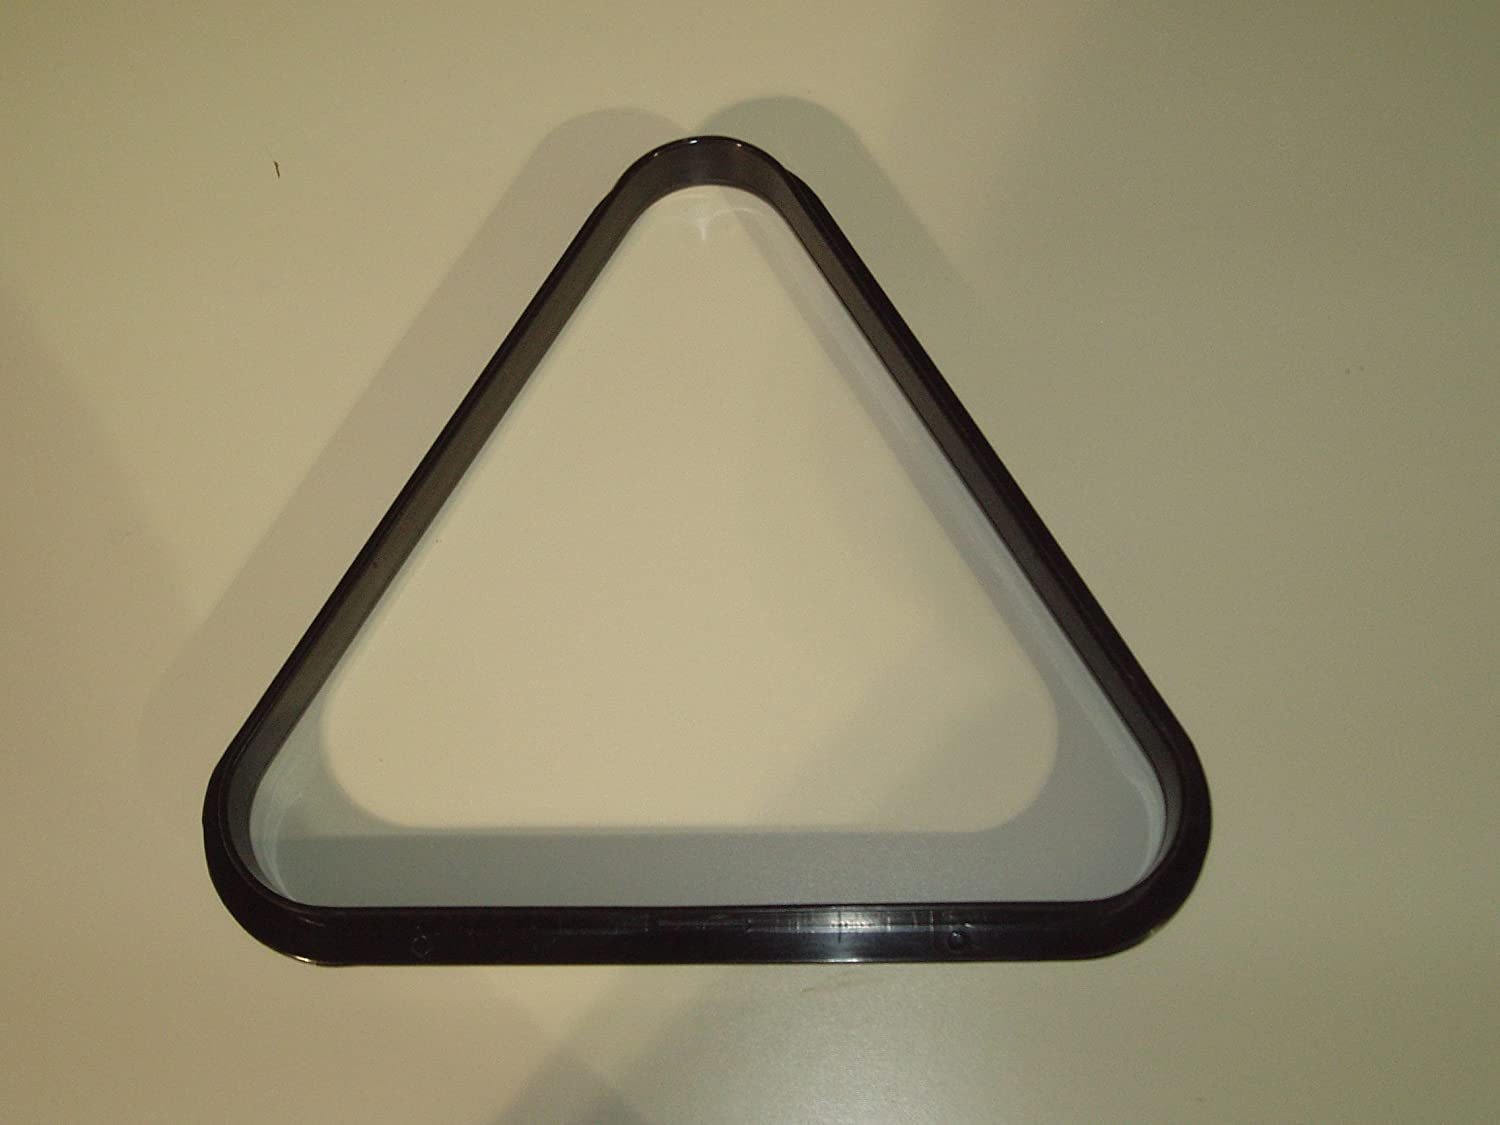 POOL TABLE TRIANGLE TO FIT STANDARD 2 POOL BALLS** by SGL